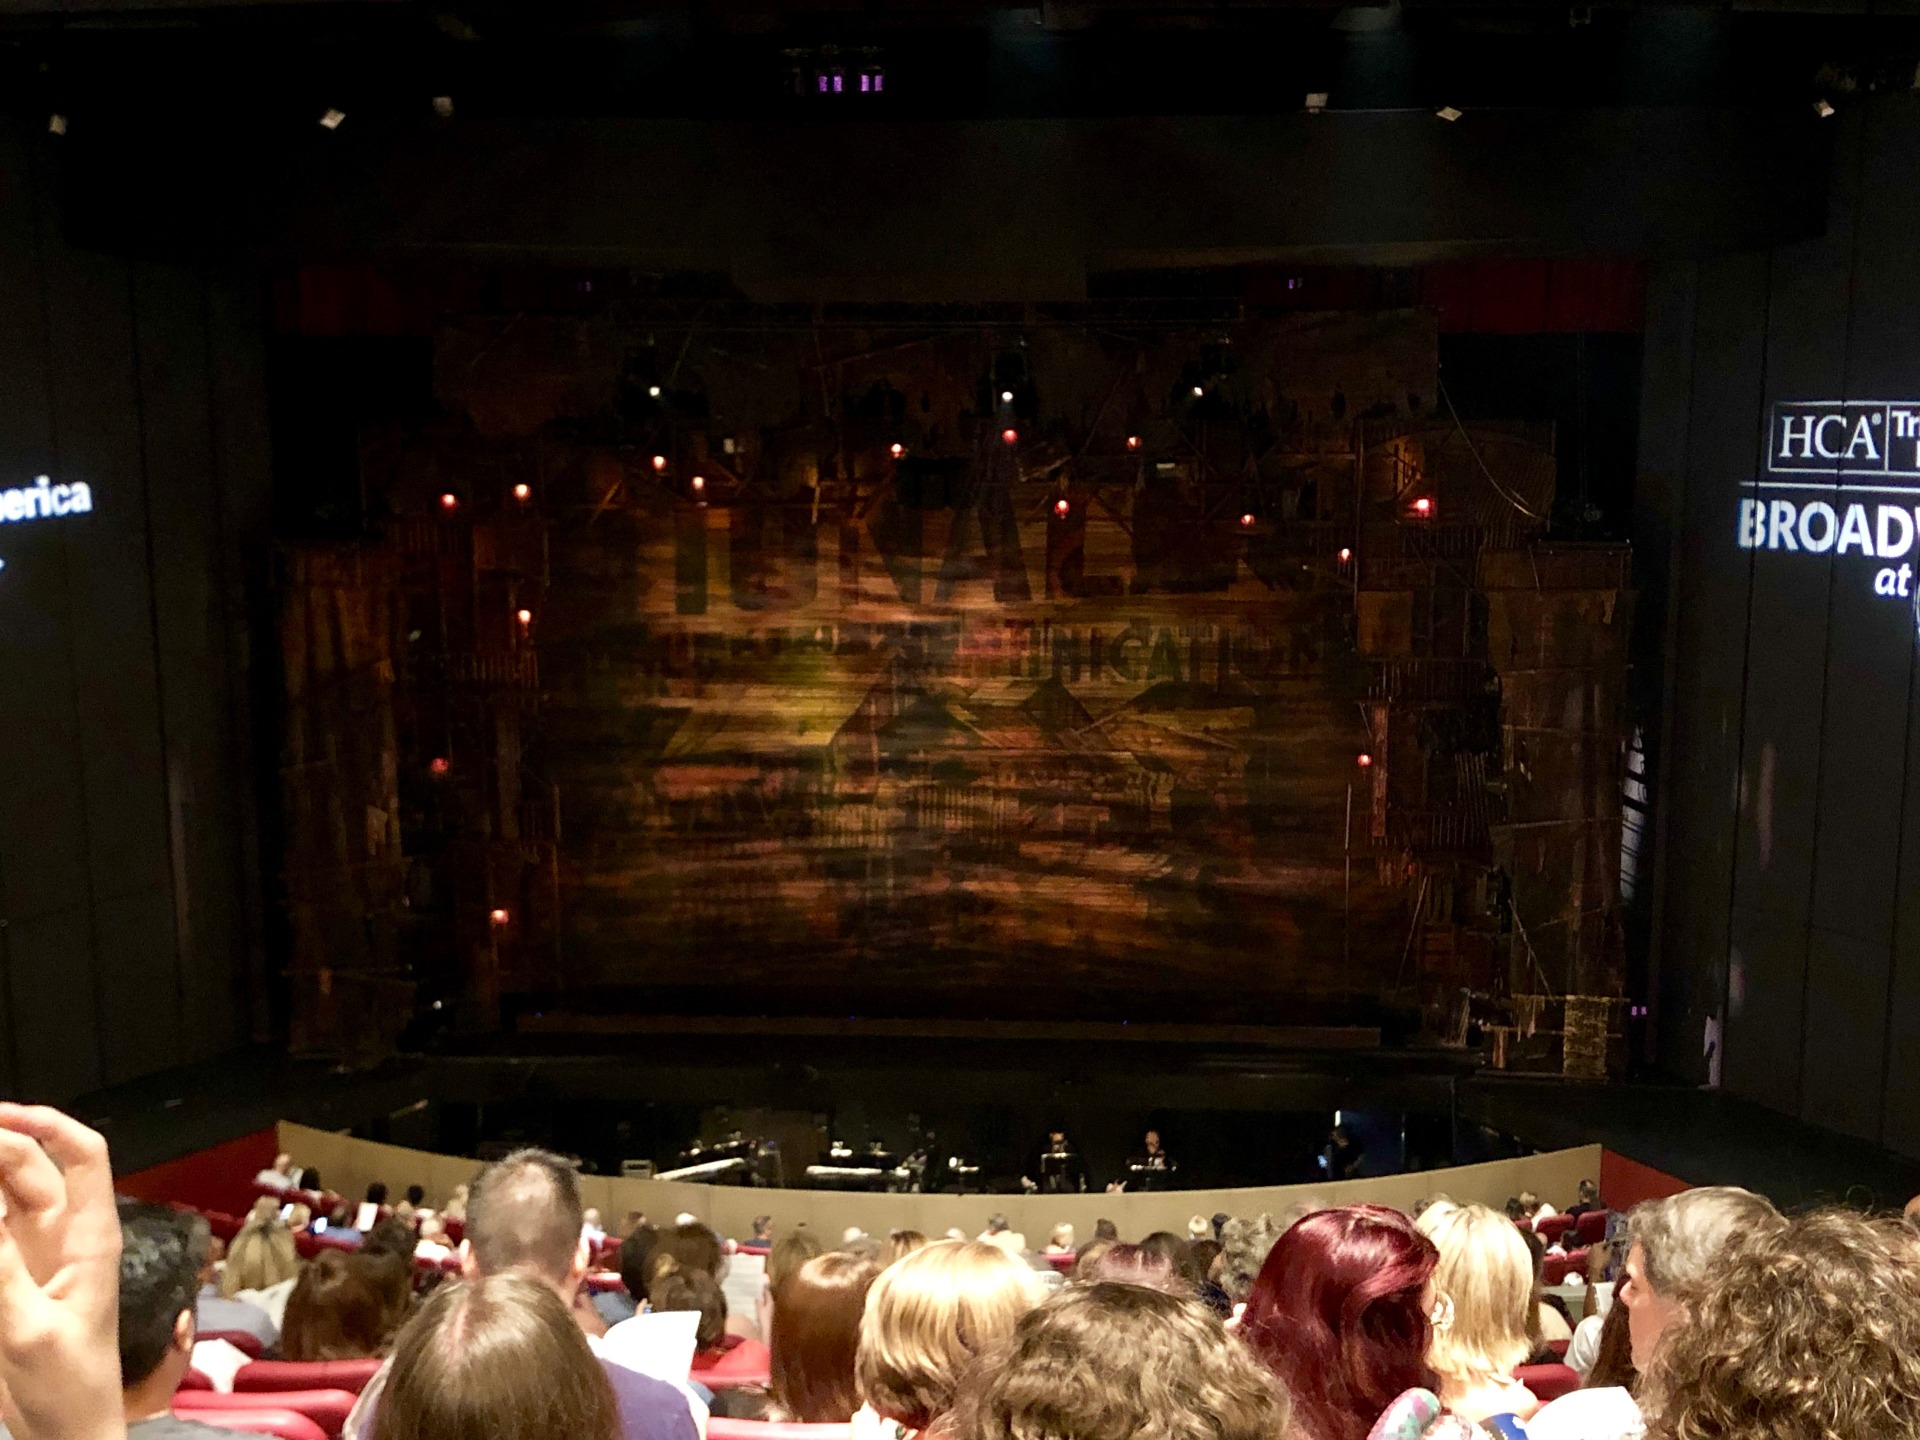 Andrew Jackson Hall Section Grand Tier Center Row K Seat 25